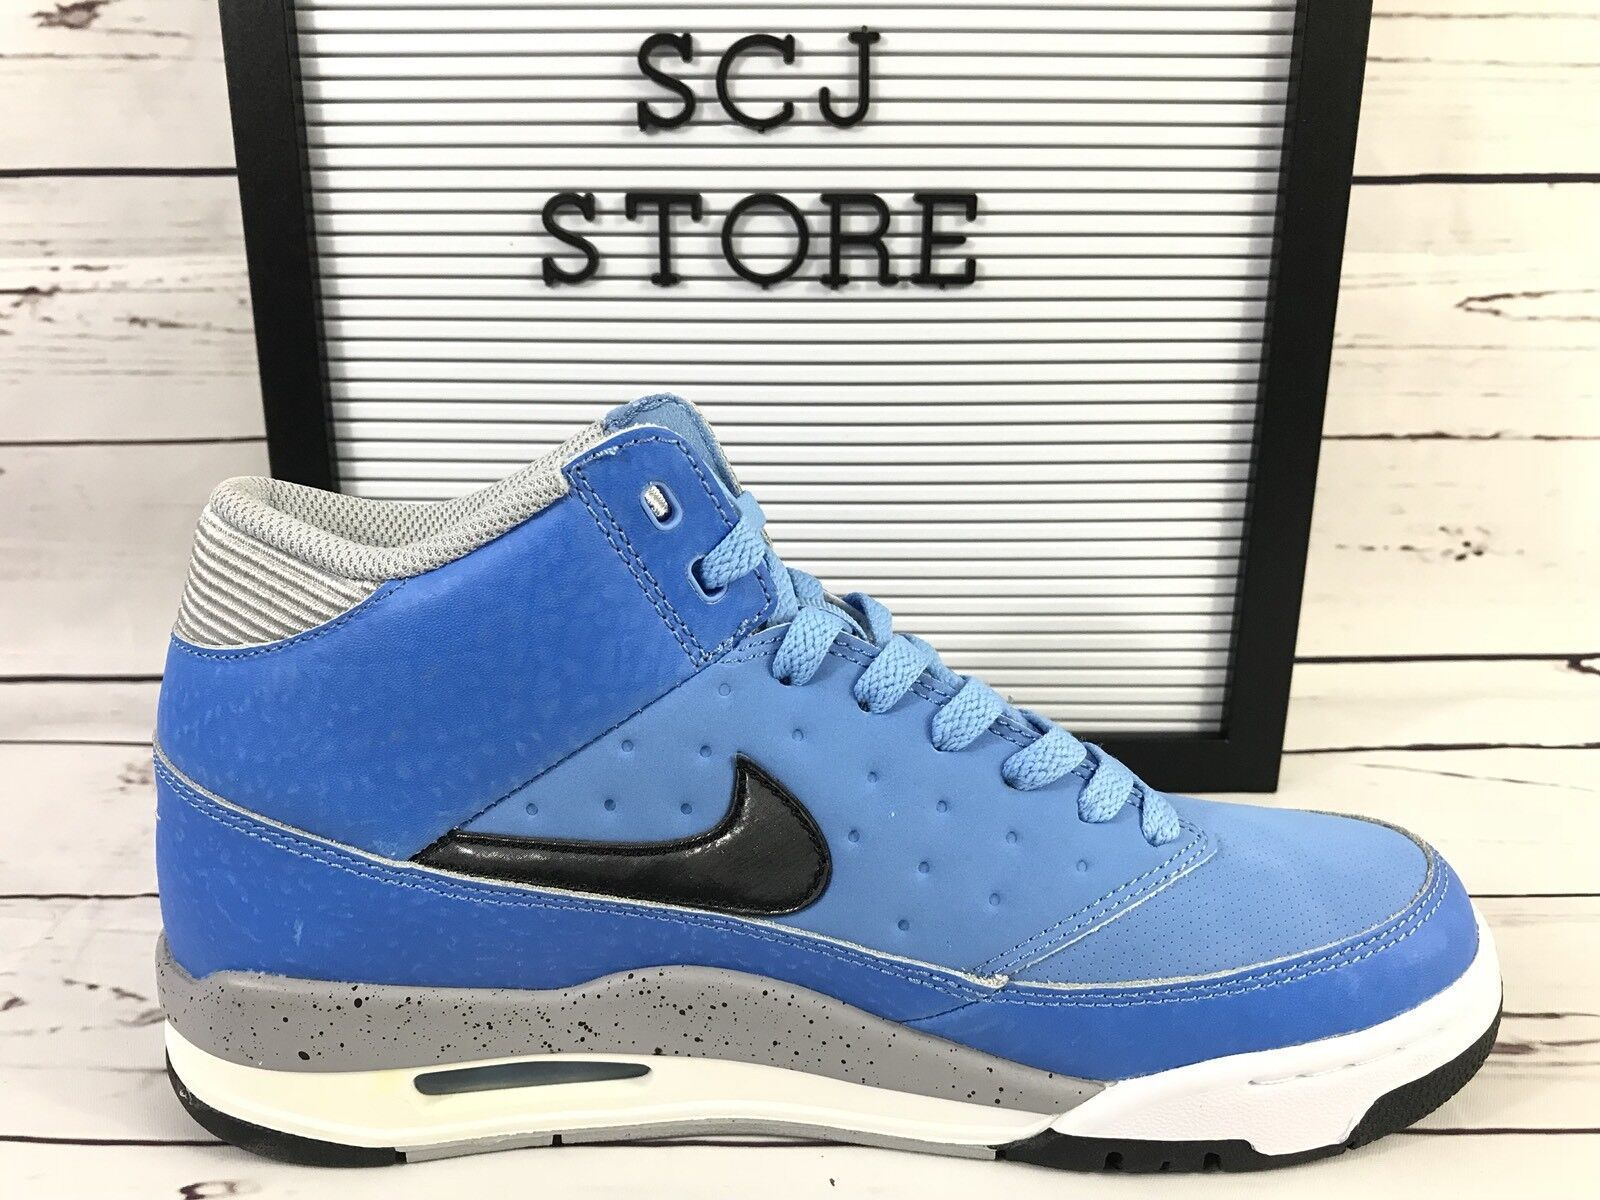 Nike Air Flight Size 8 Classic Basketball bluee Jordan Retro shoes 414967-400